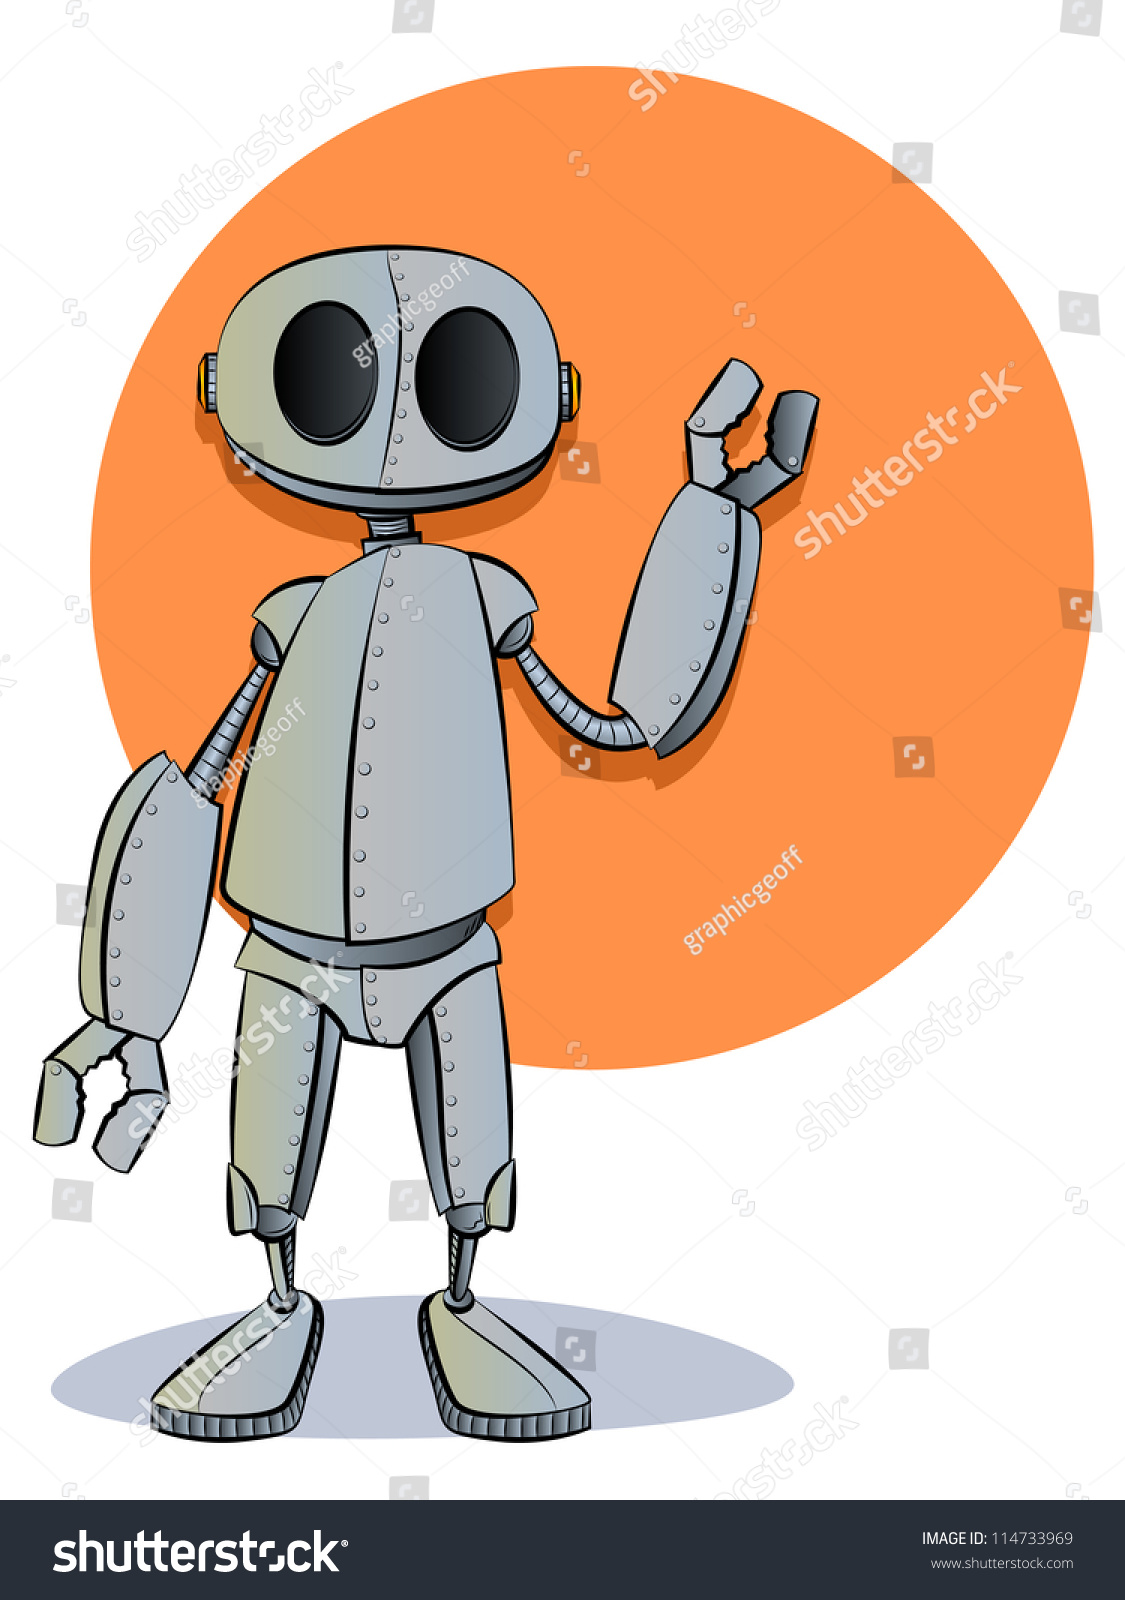 Robotics robot cartoon character mascot stock photo